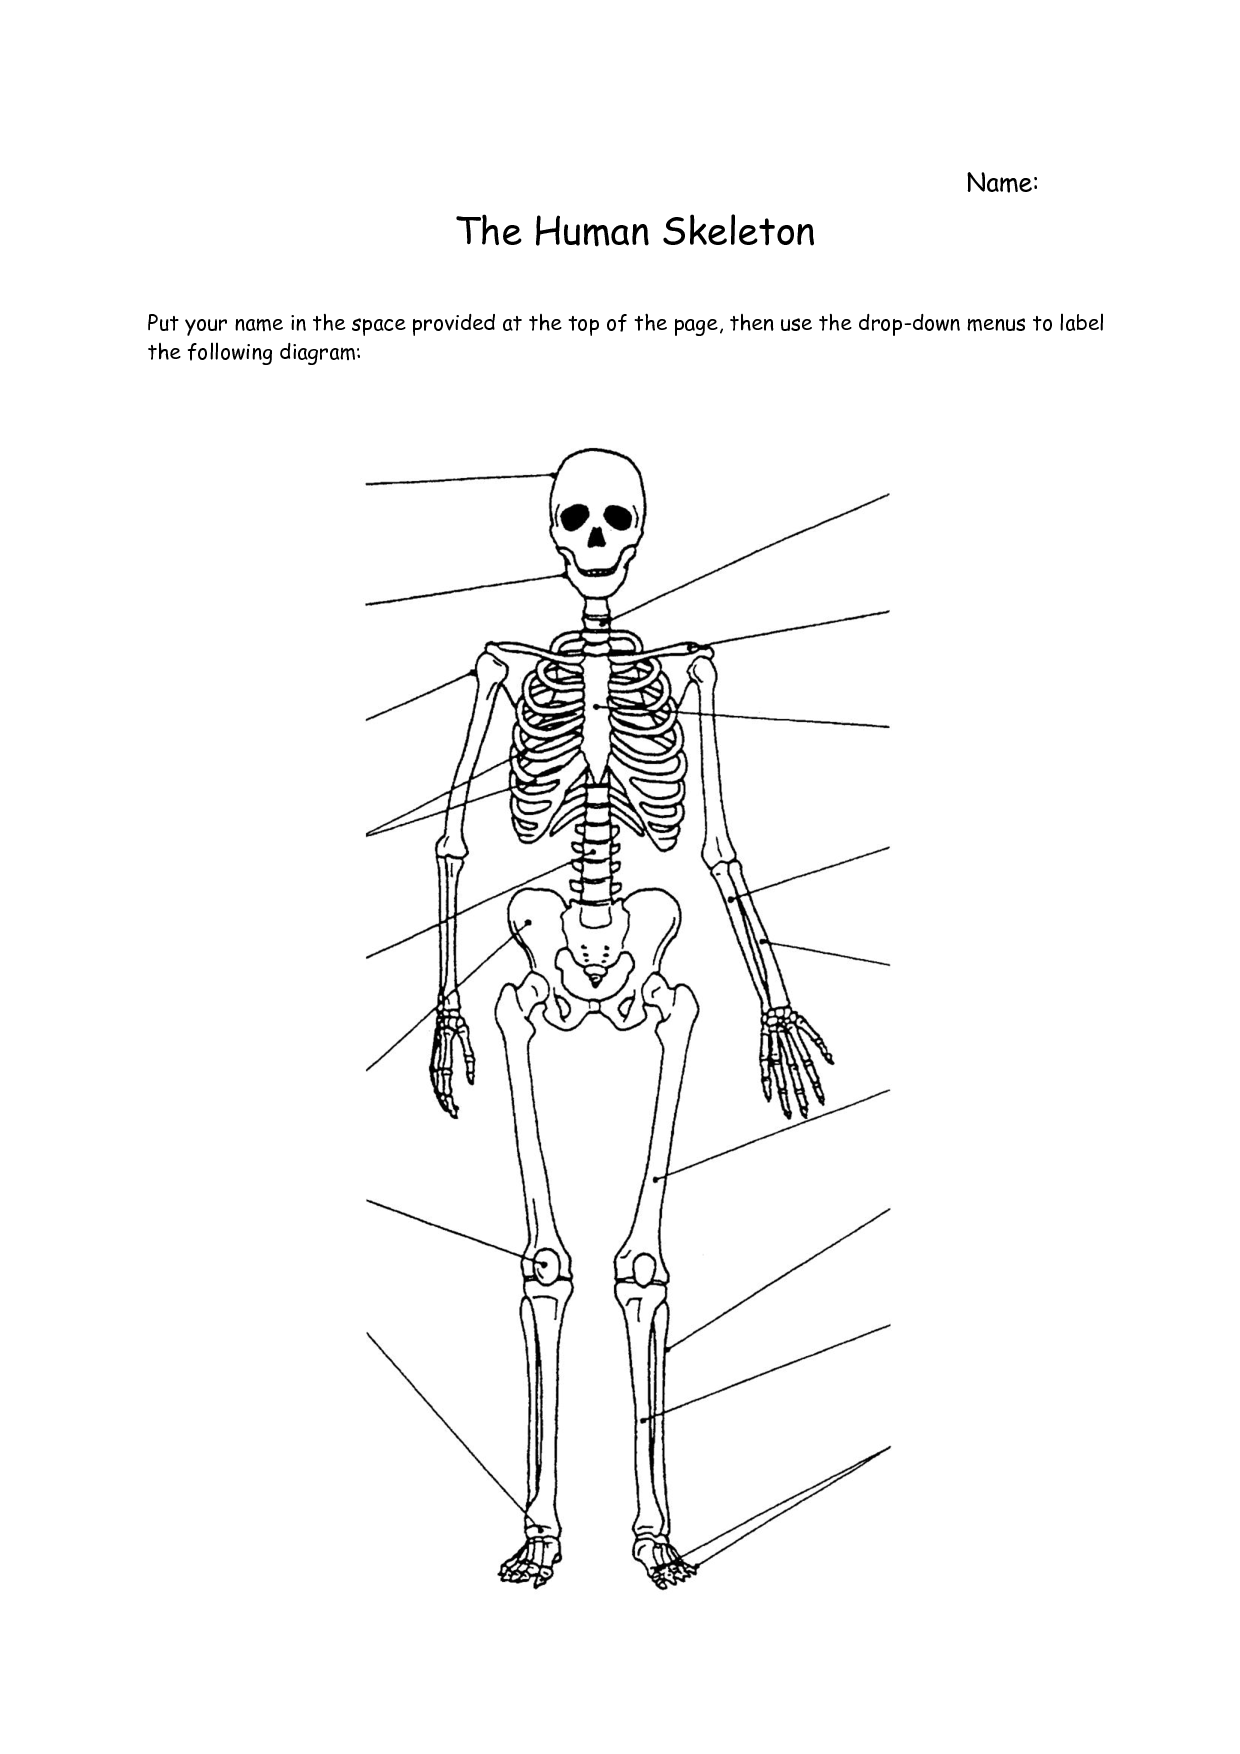 Worksheet On Our Skeletal System